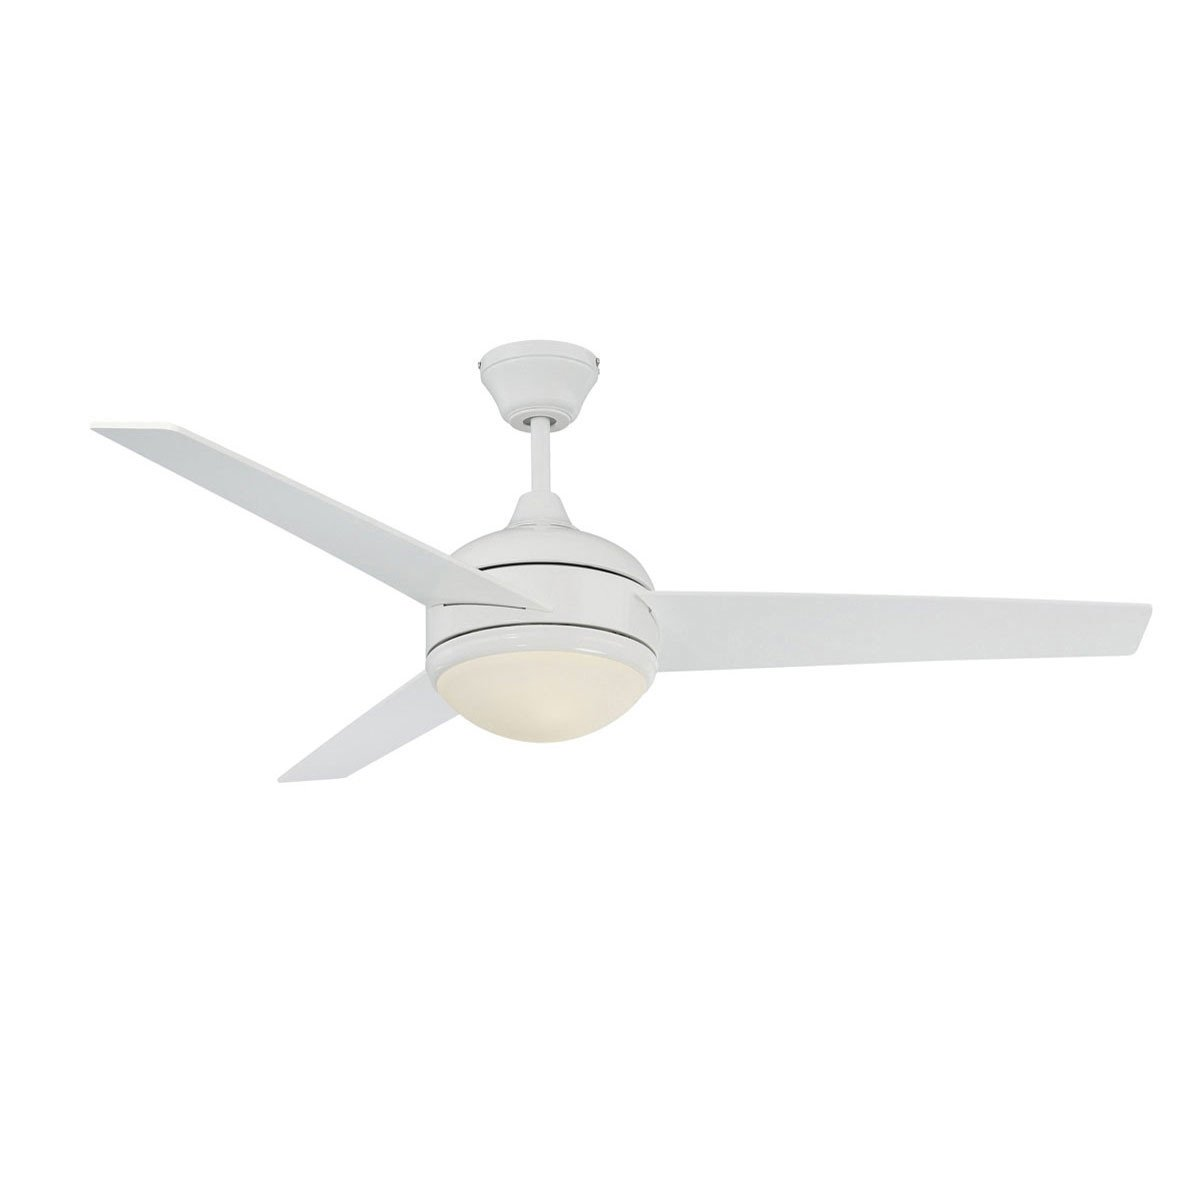 "Concord Fans 52"" Skylark Modern White Ceiling Fan with Light and Remote"